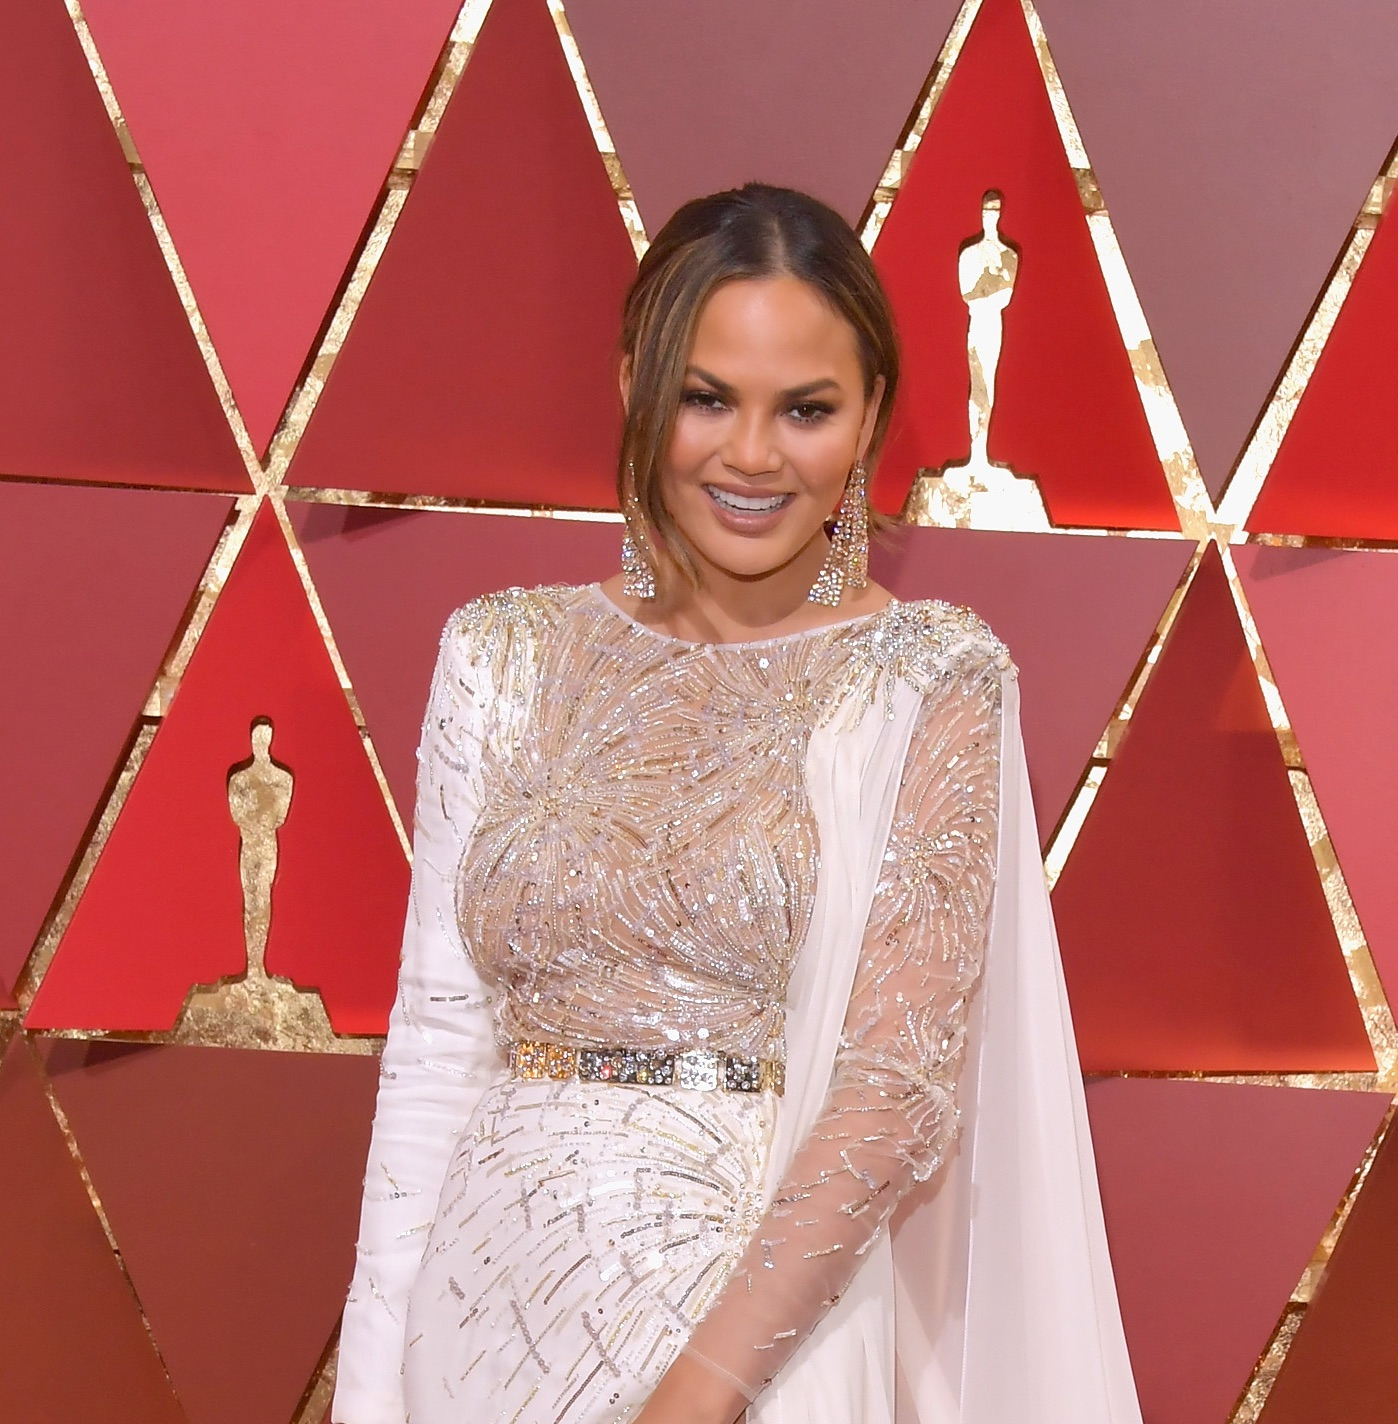 Everyone at the Oscars looks like they are wearing wedding dresses, and we are very into it